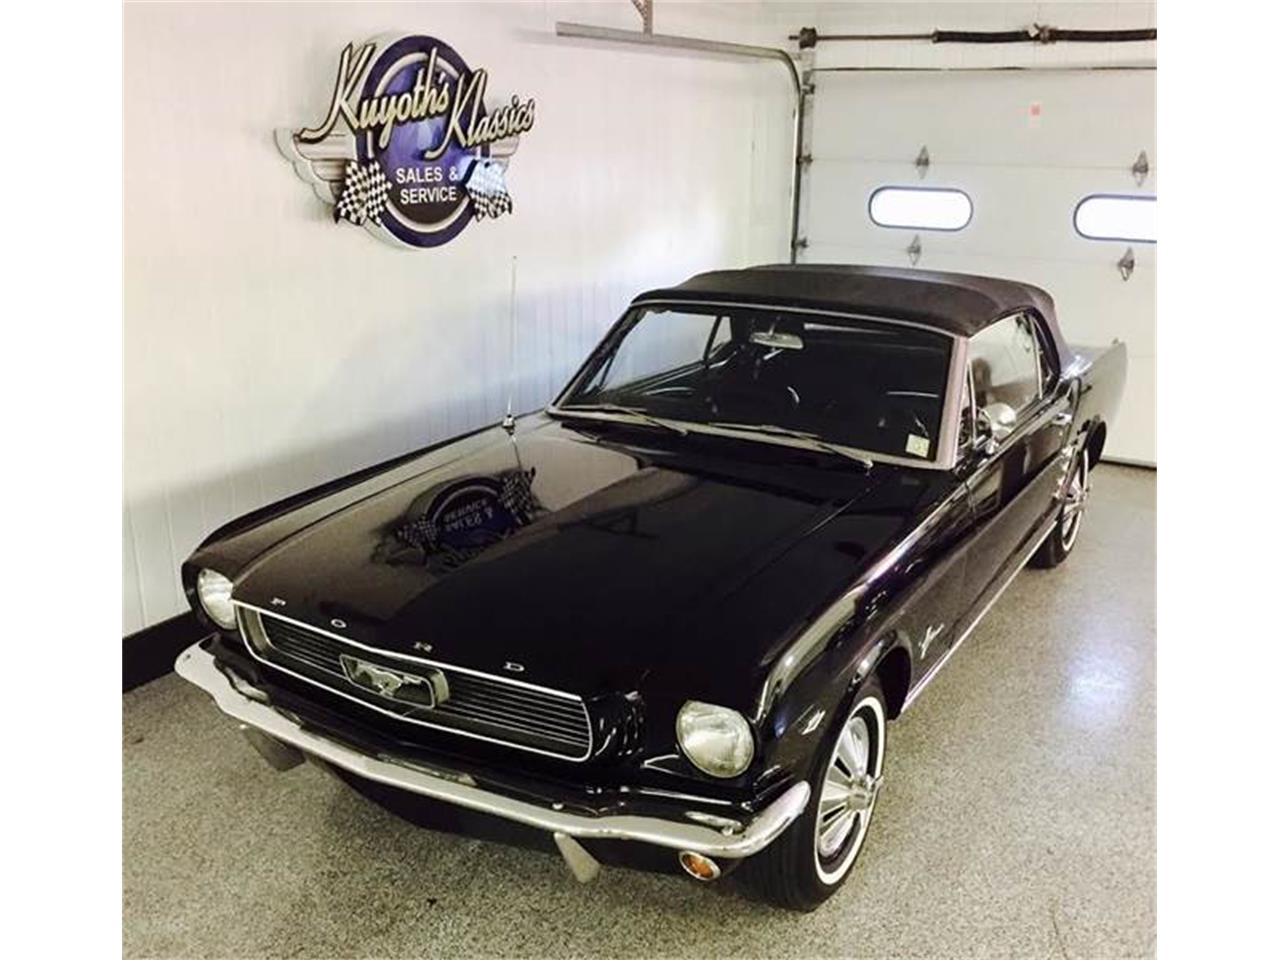 Large Picture of Classic '66 Mustang located in Wisconsin Offered by Kuyoth's Klassics - JY3M